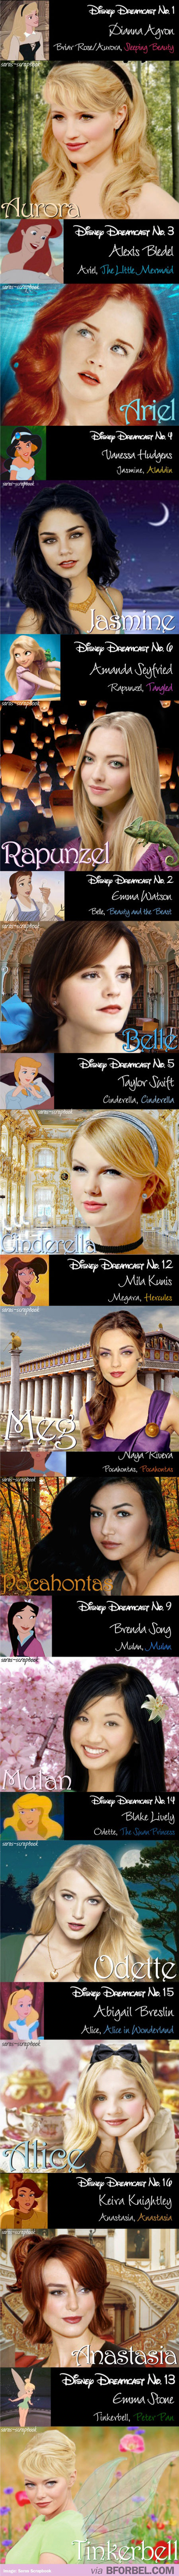 Disney Characters in real life